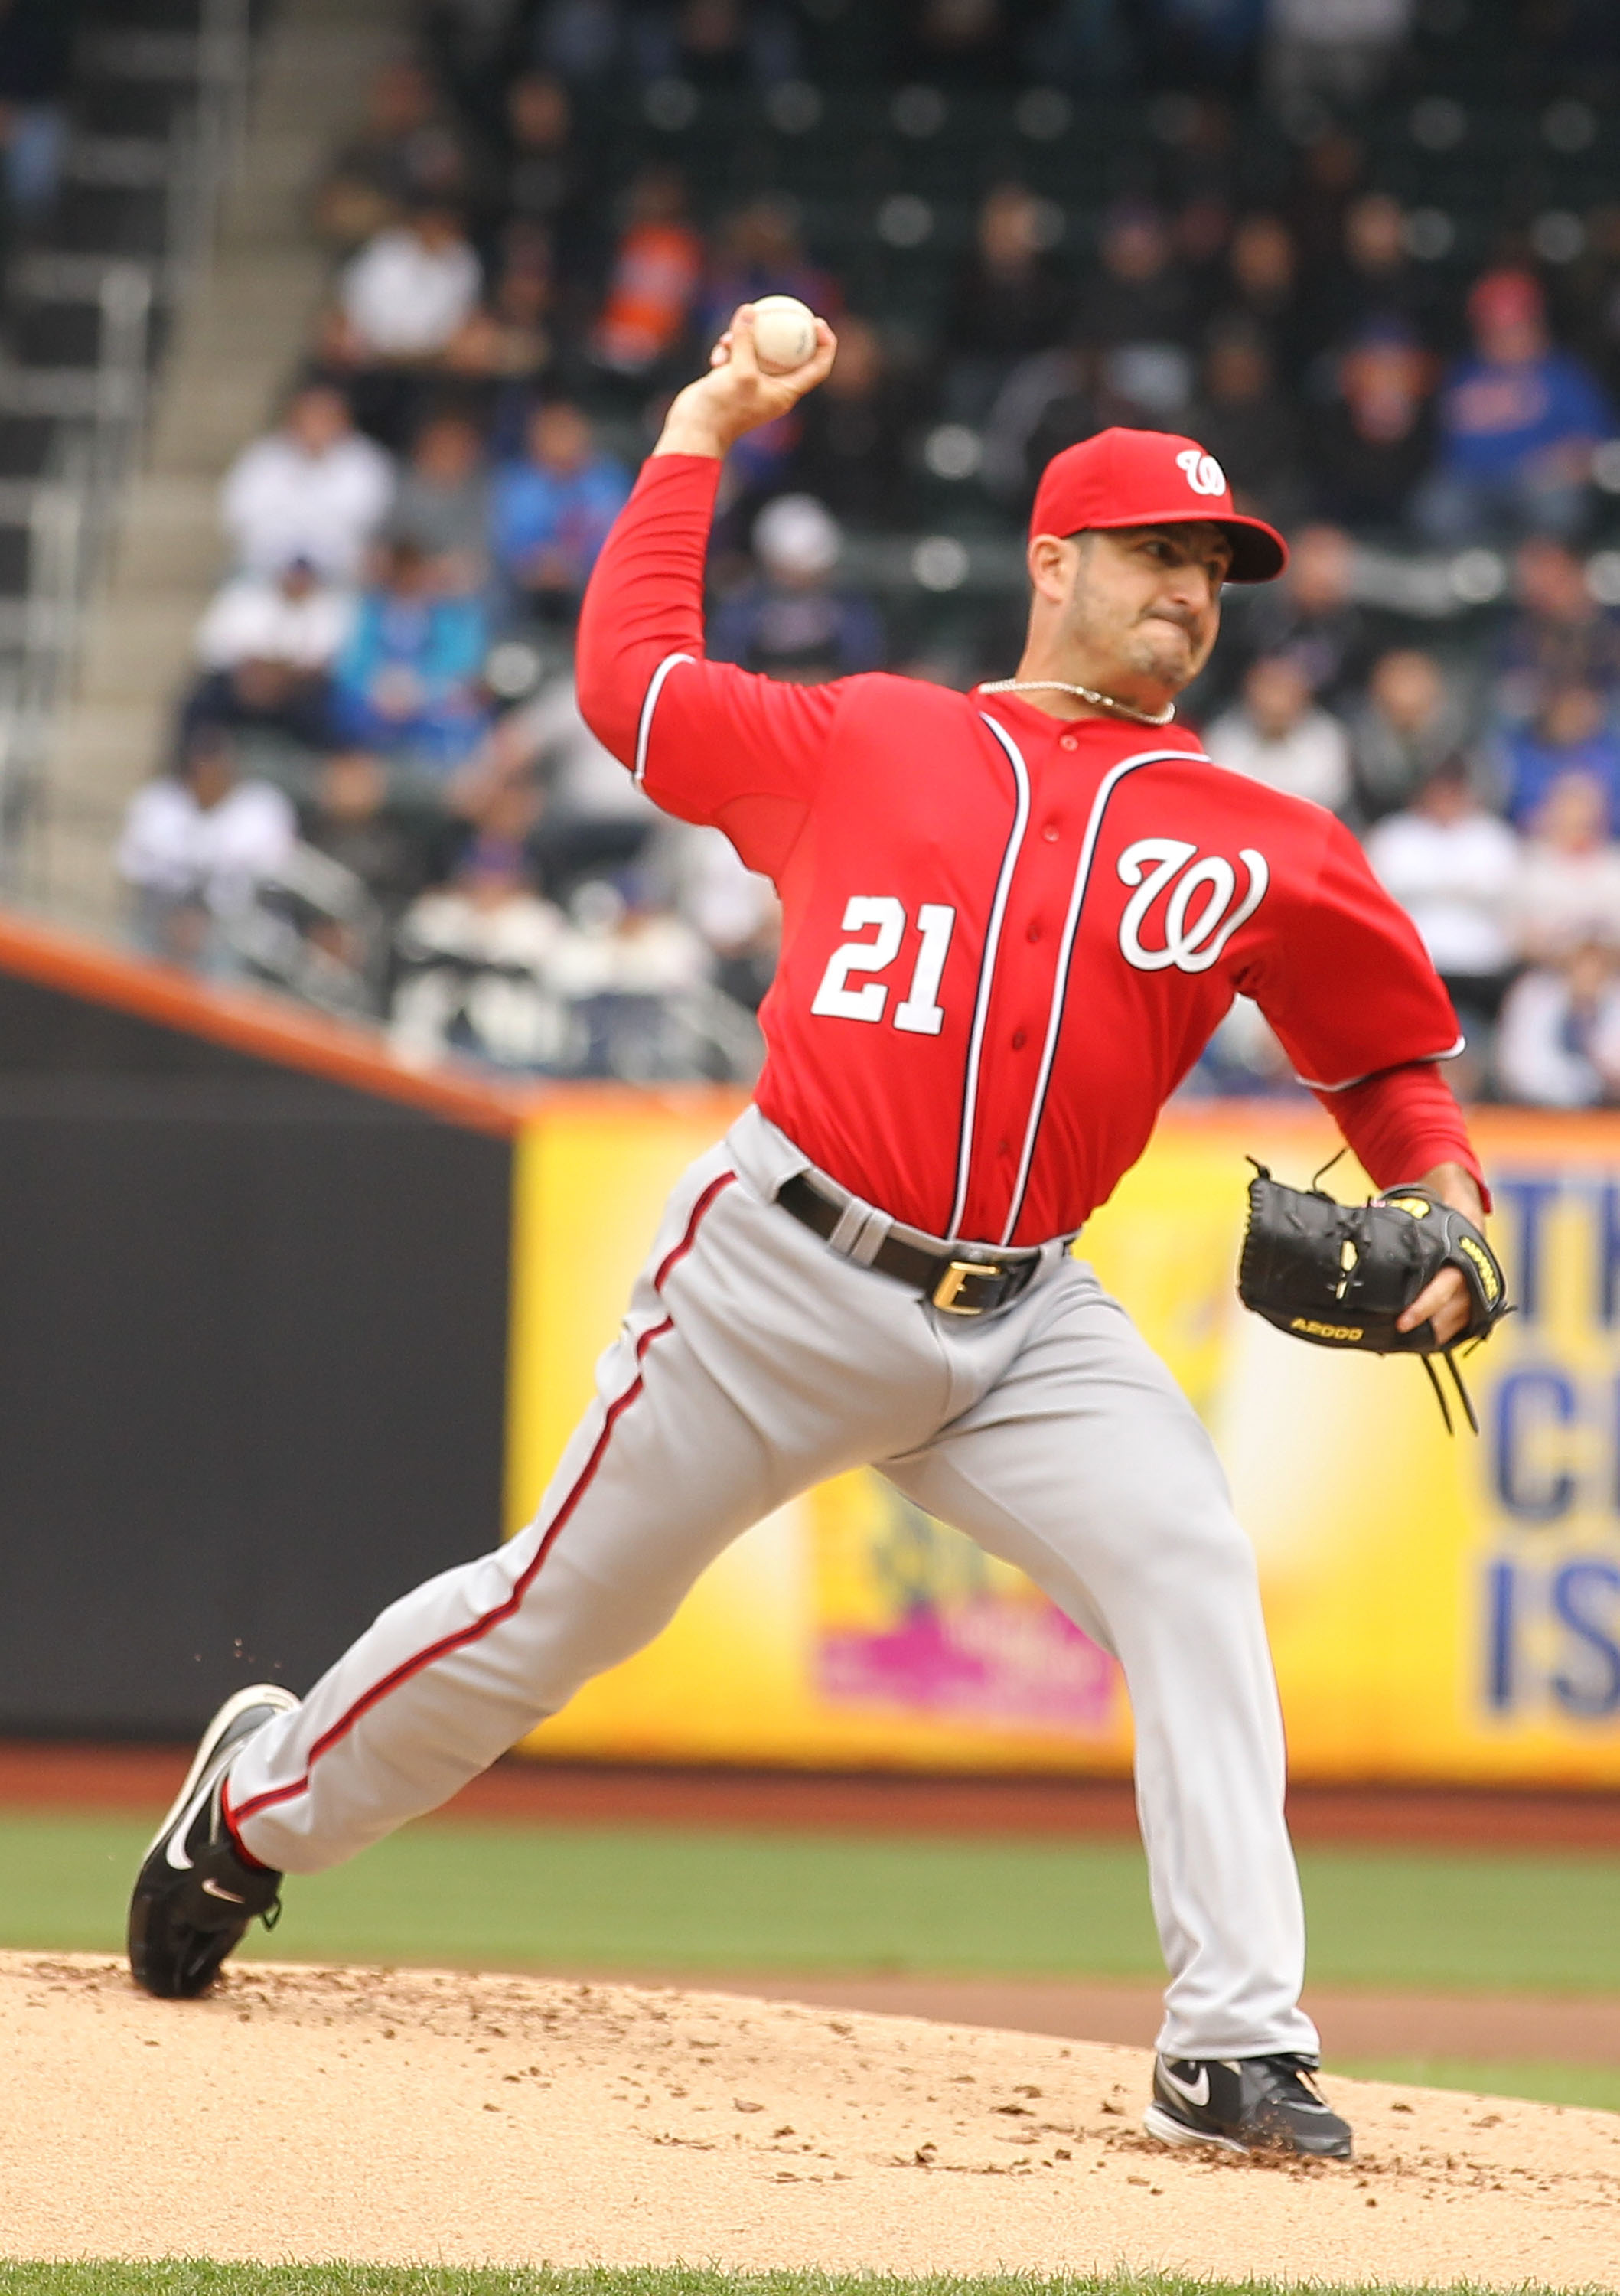 NEW YORK, NY - APRIL 10:  Jason Marquis #21 of the Washington Nationals in action against the New York Mets during their game on April 10, 2011 at Citi Field in the Flushing neighborhood of the Queens borough of New York City.  (Photo by Al Bello/Getty Im